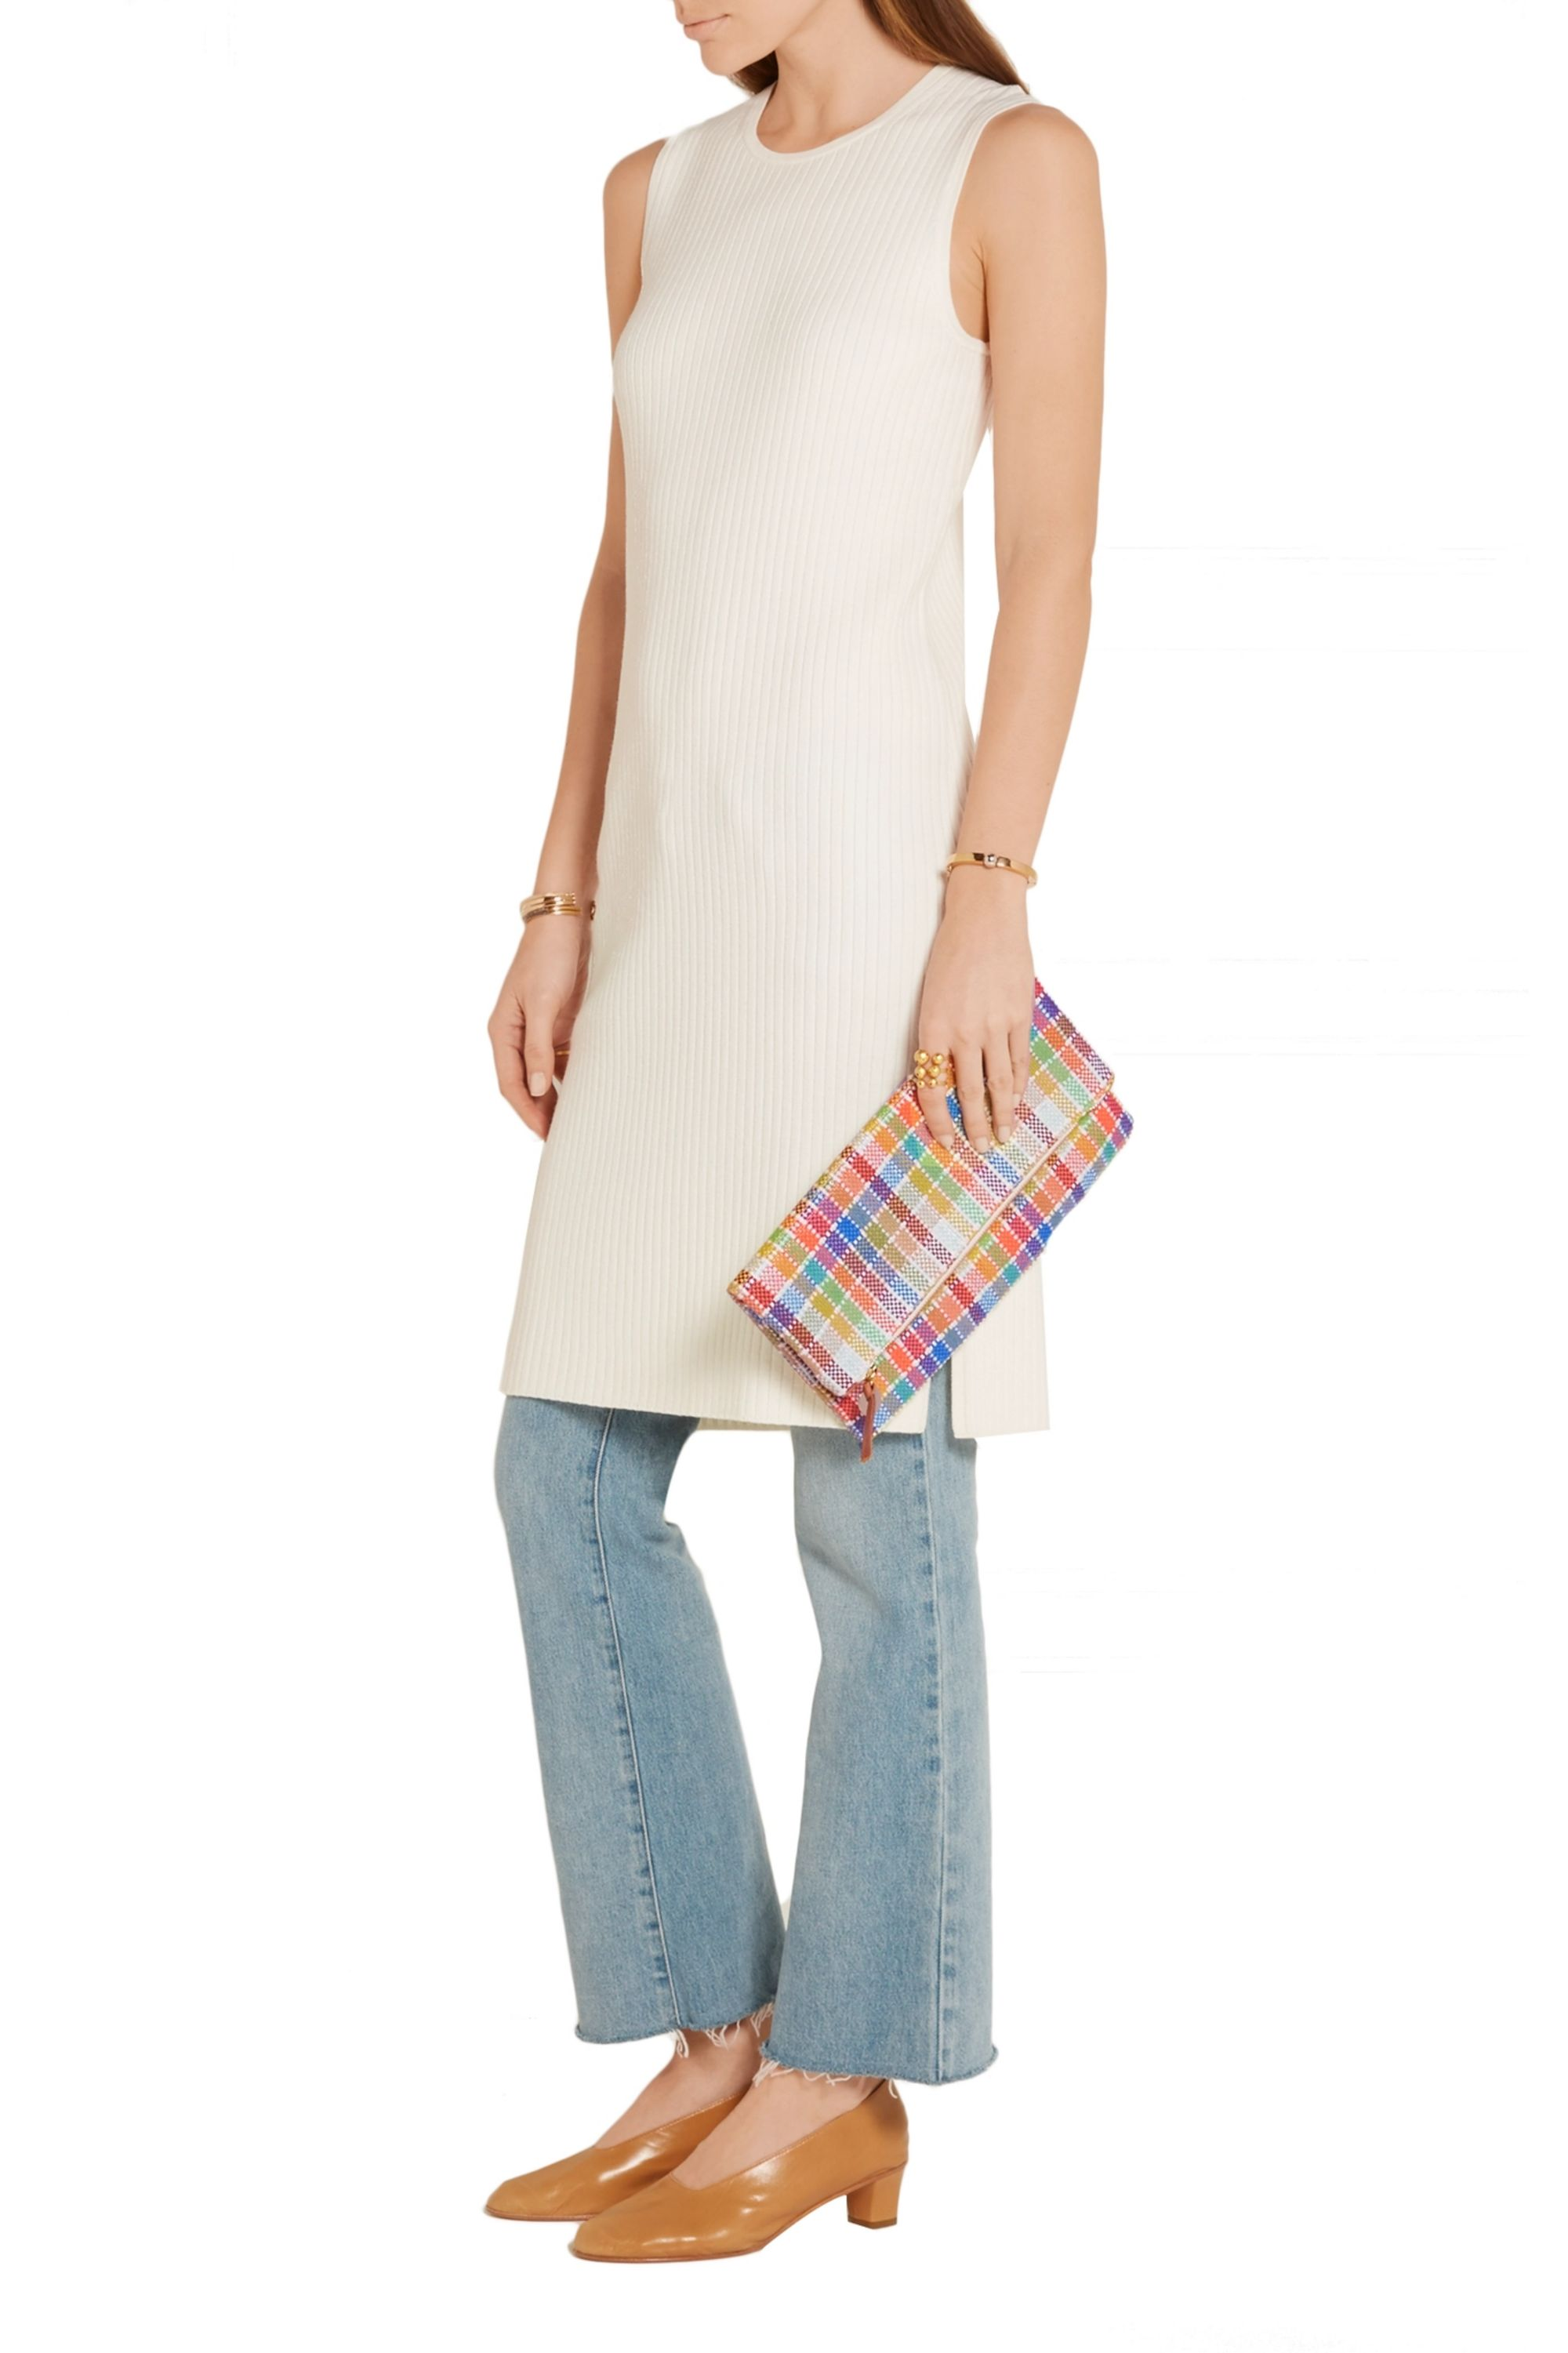 Clare V. Plaid fold-over woven canvas clutch